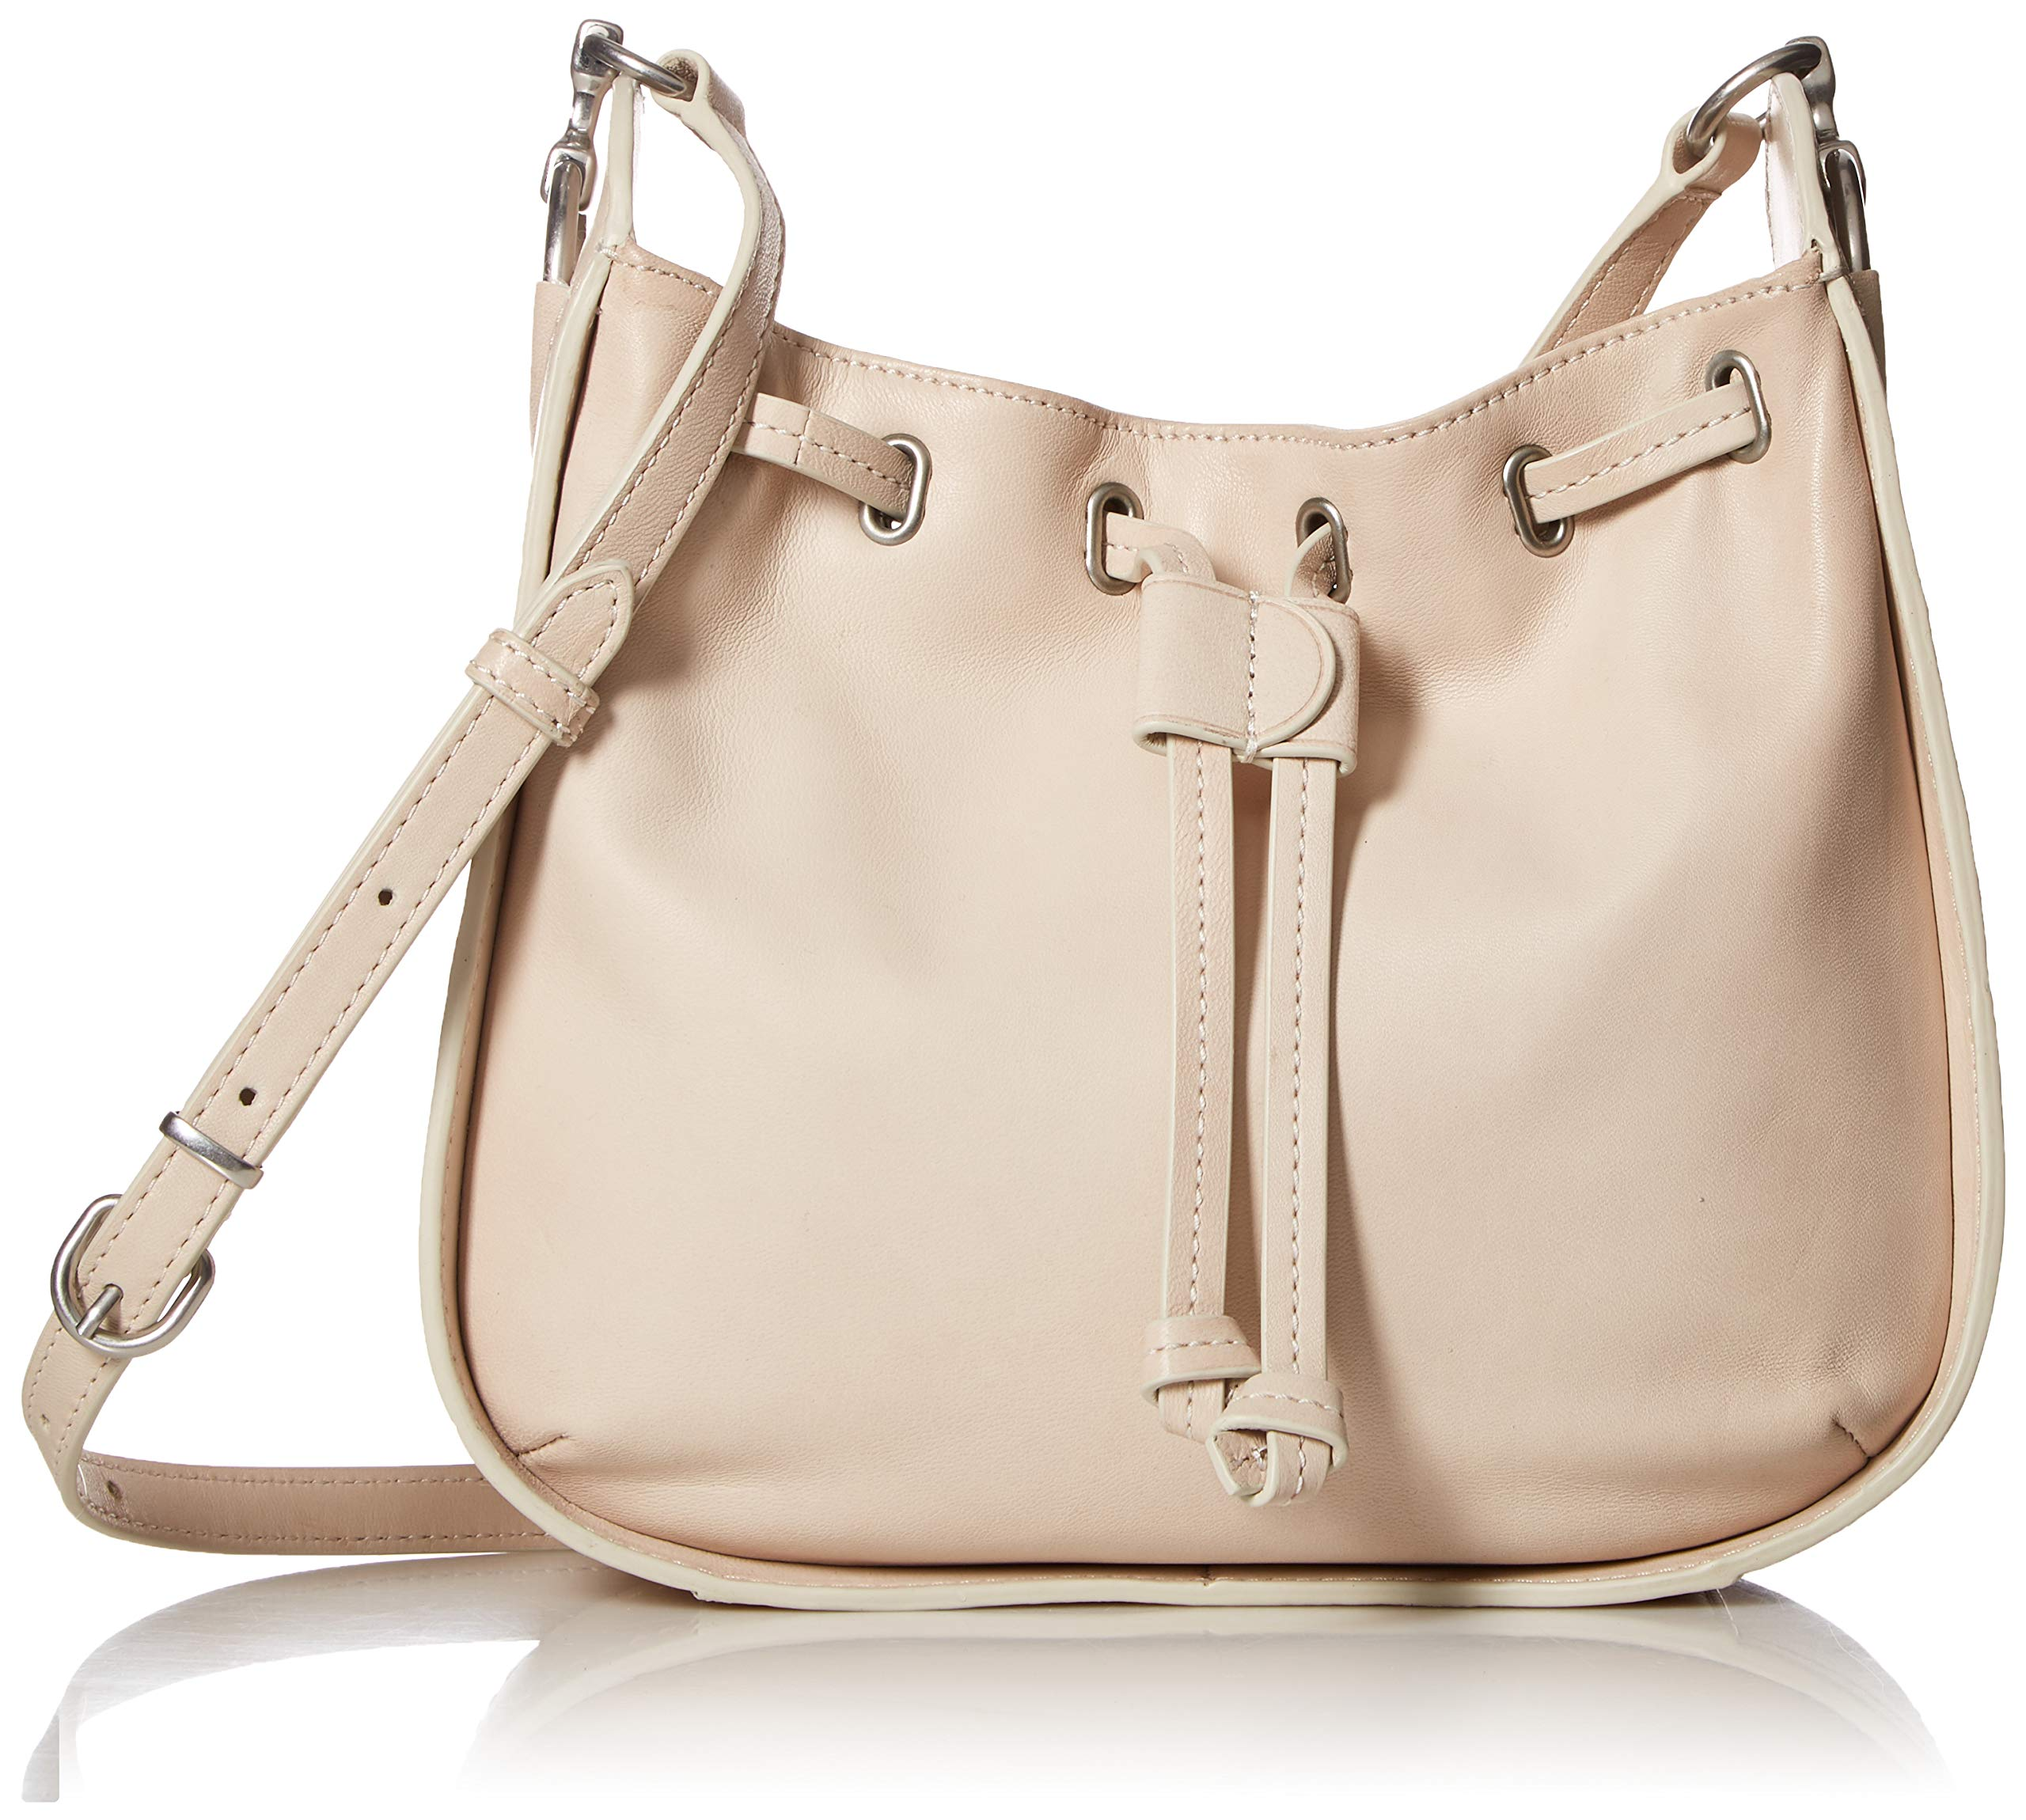 FRYE Ilana Small Leather Drawstring Crossbody